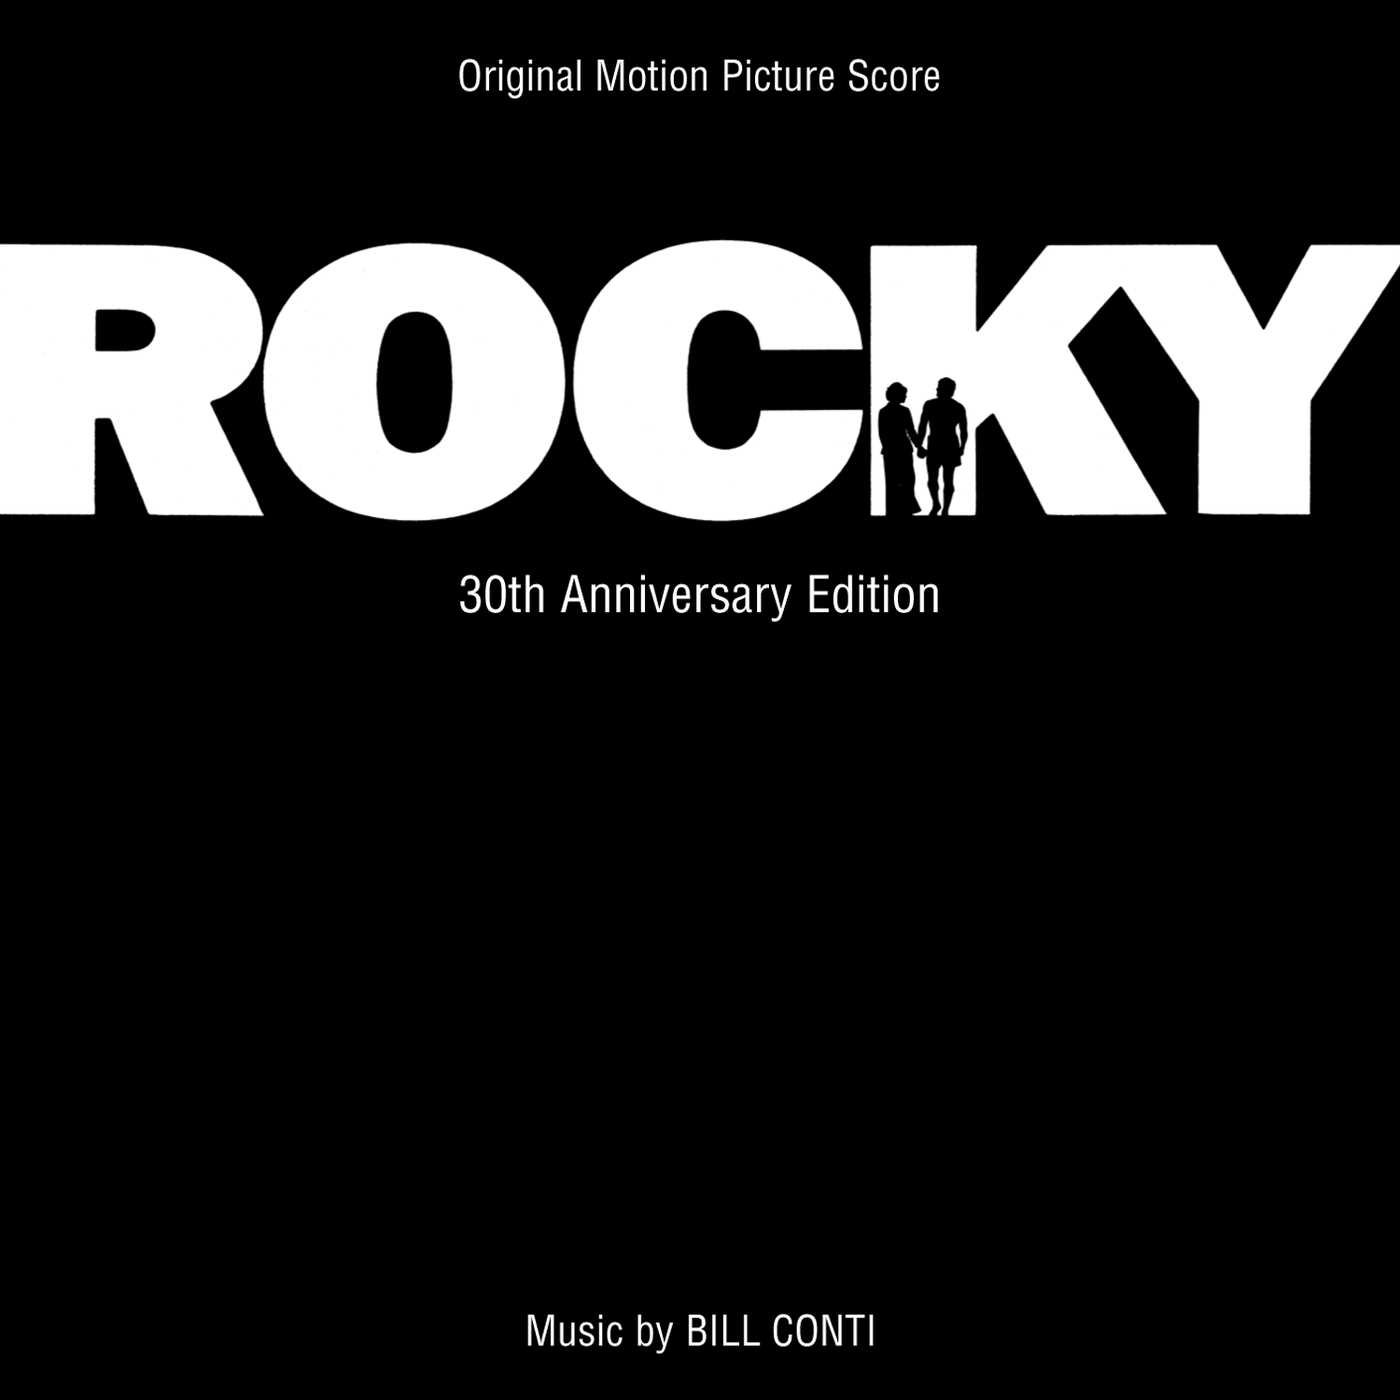 Rocky 30th Anniversary Edition